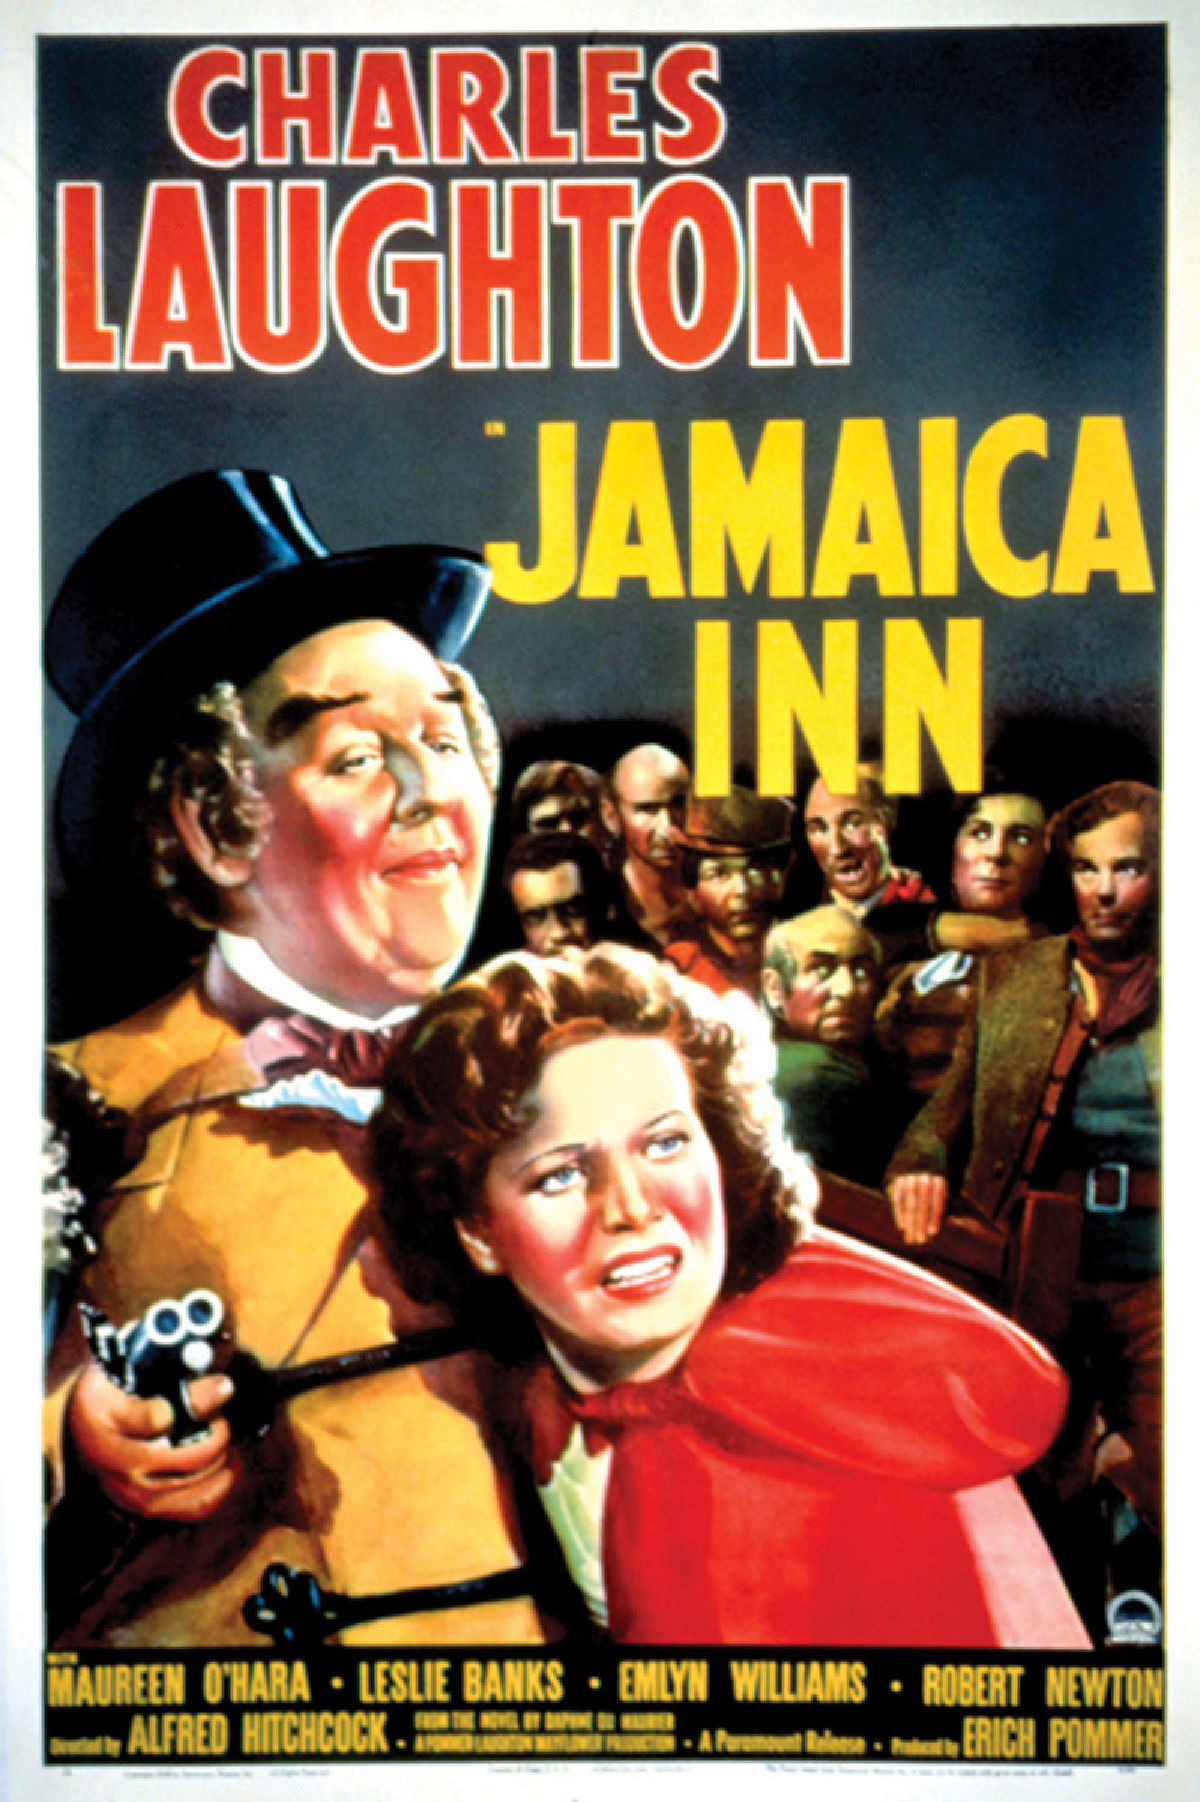 'Jamaica Inn' movie poster